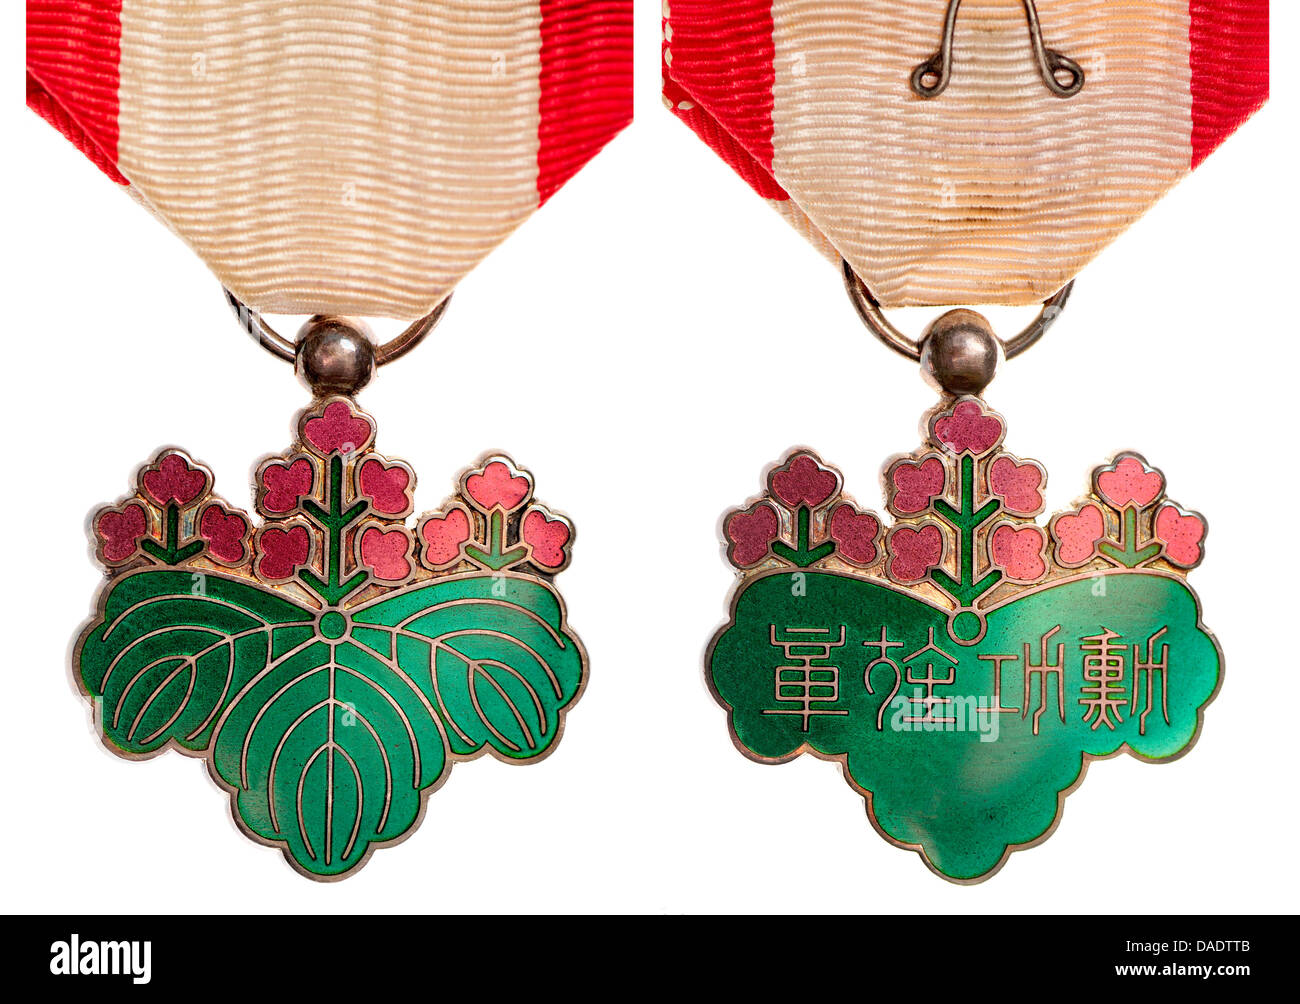 Japanese Medal: Order of the Rising Sun (7th class) Stock Photo